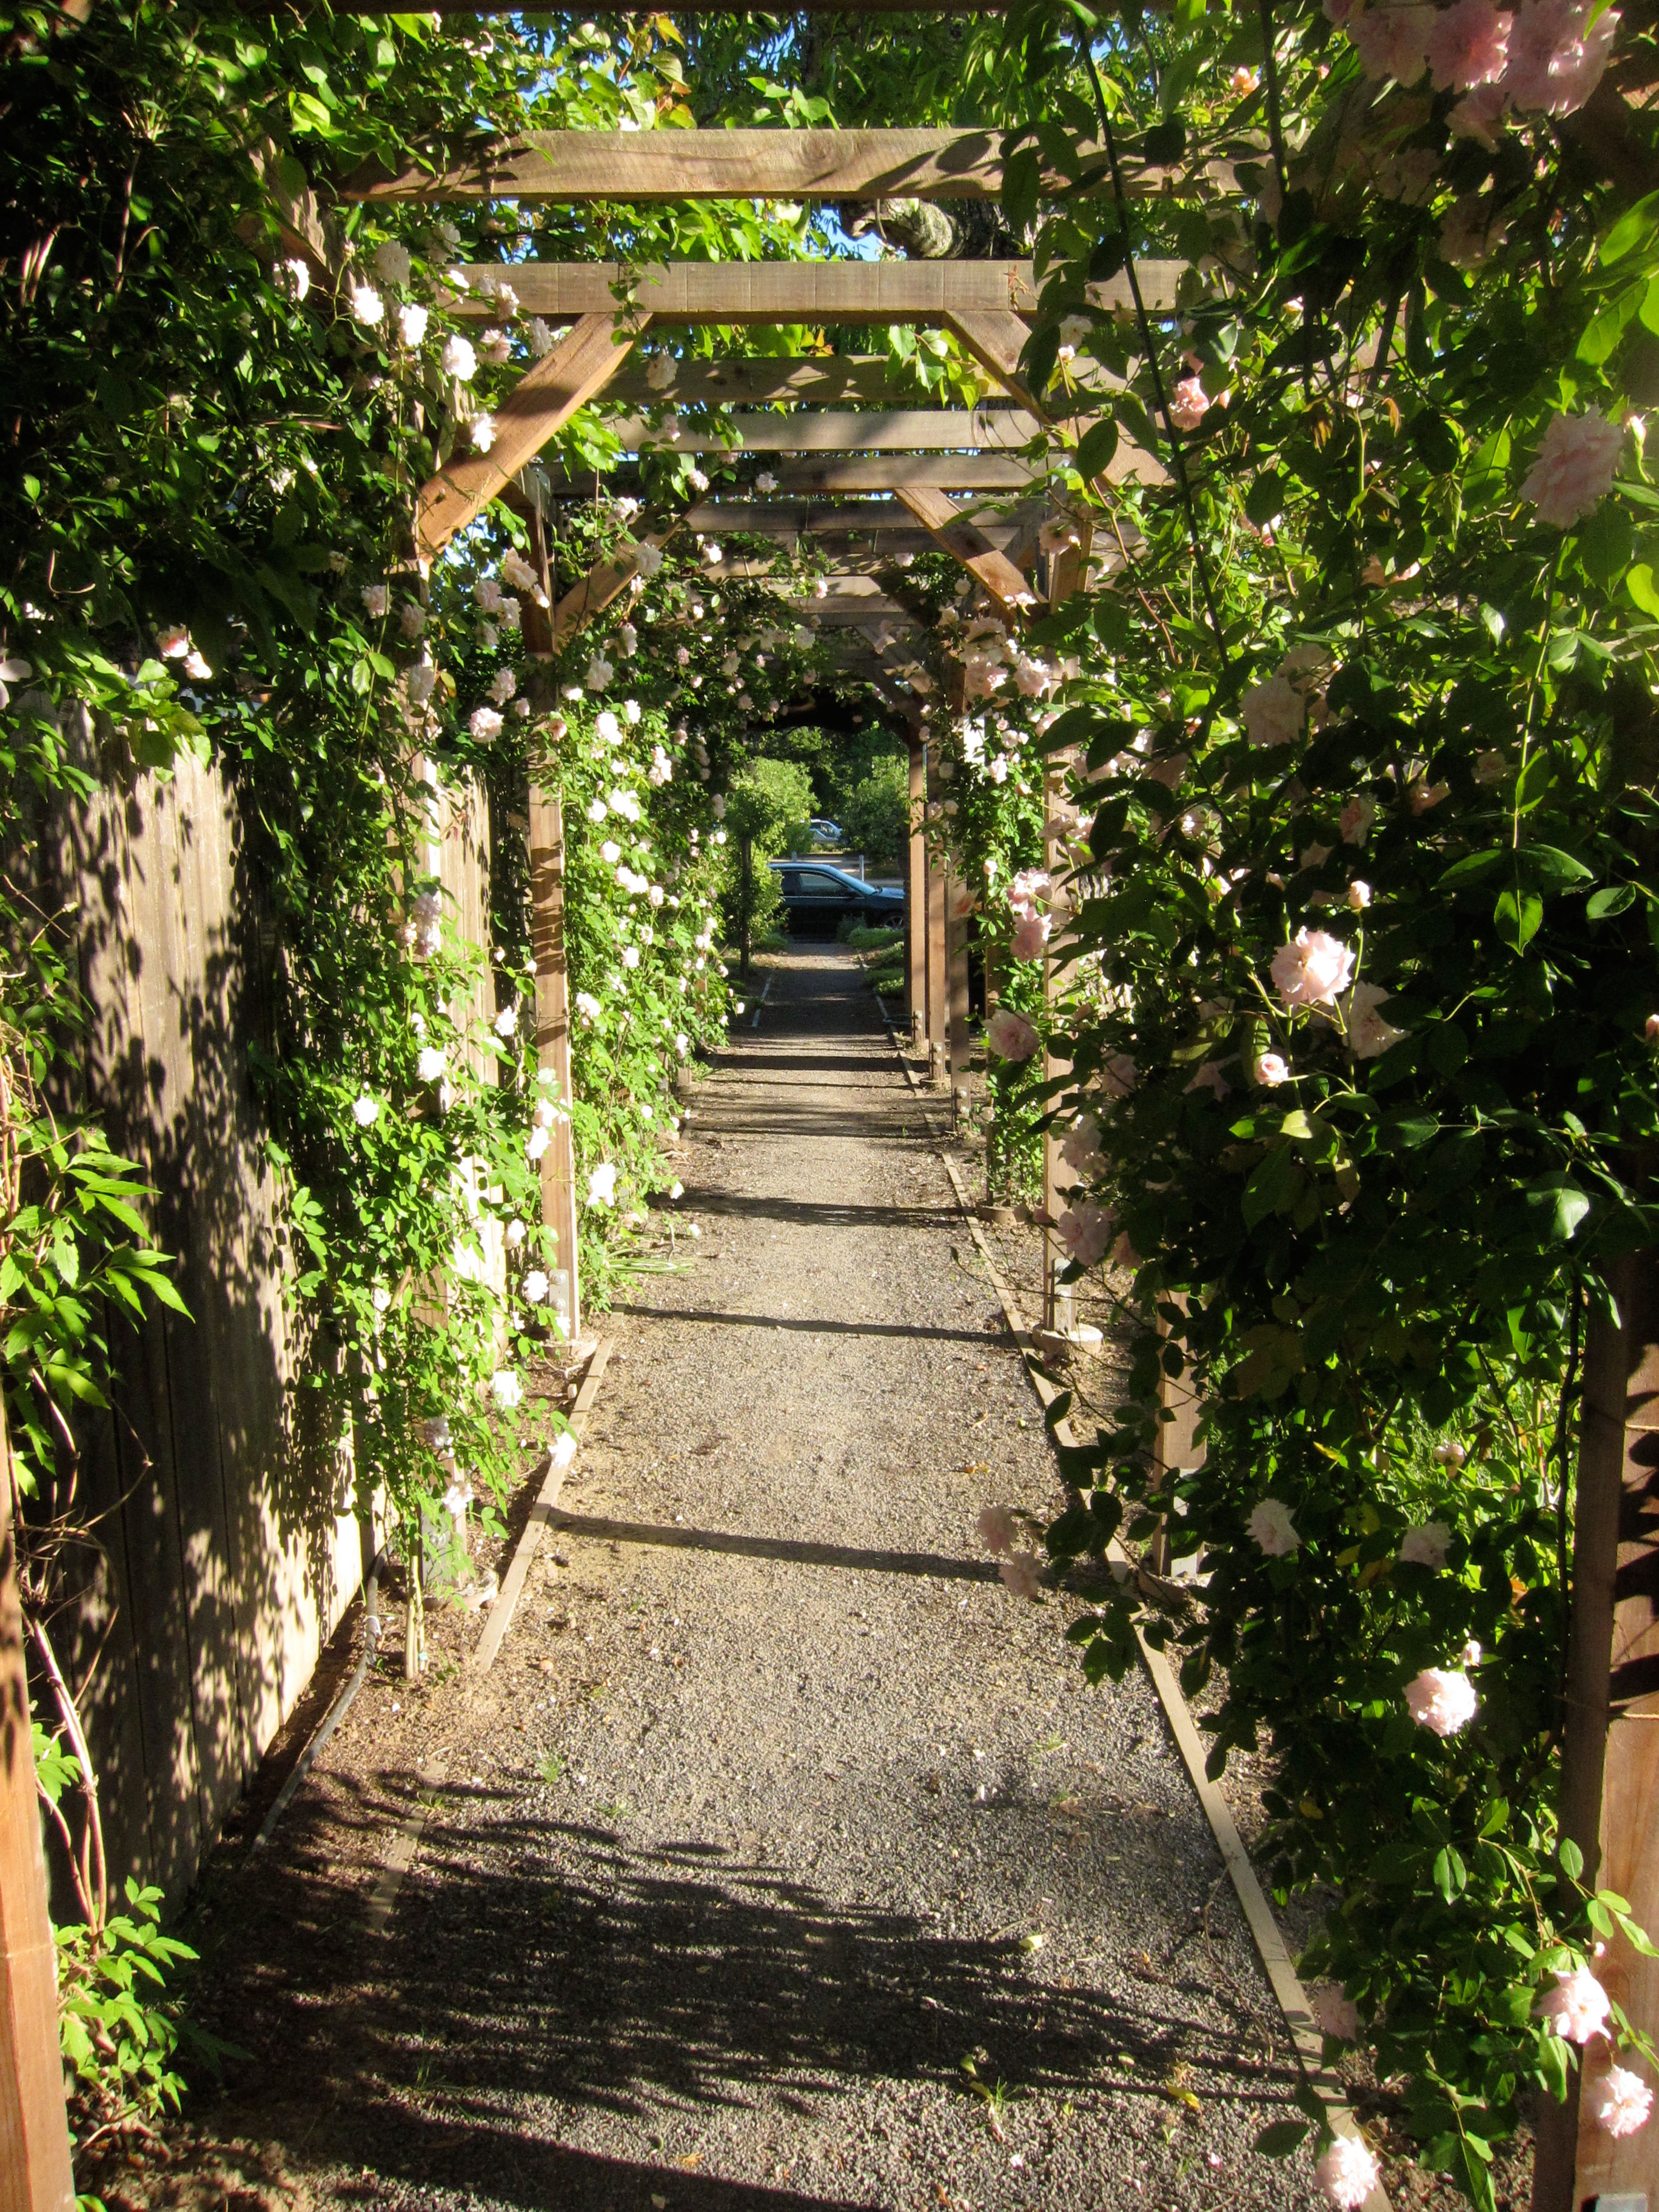 """essay on the garden of forking paths """"garden of forking paths"""" is a story that as it develops you are able to understand it fully at the beginning, i had some trouble following it, but as the story went on, the storyline became clearer in my mind."""